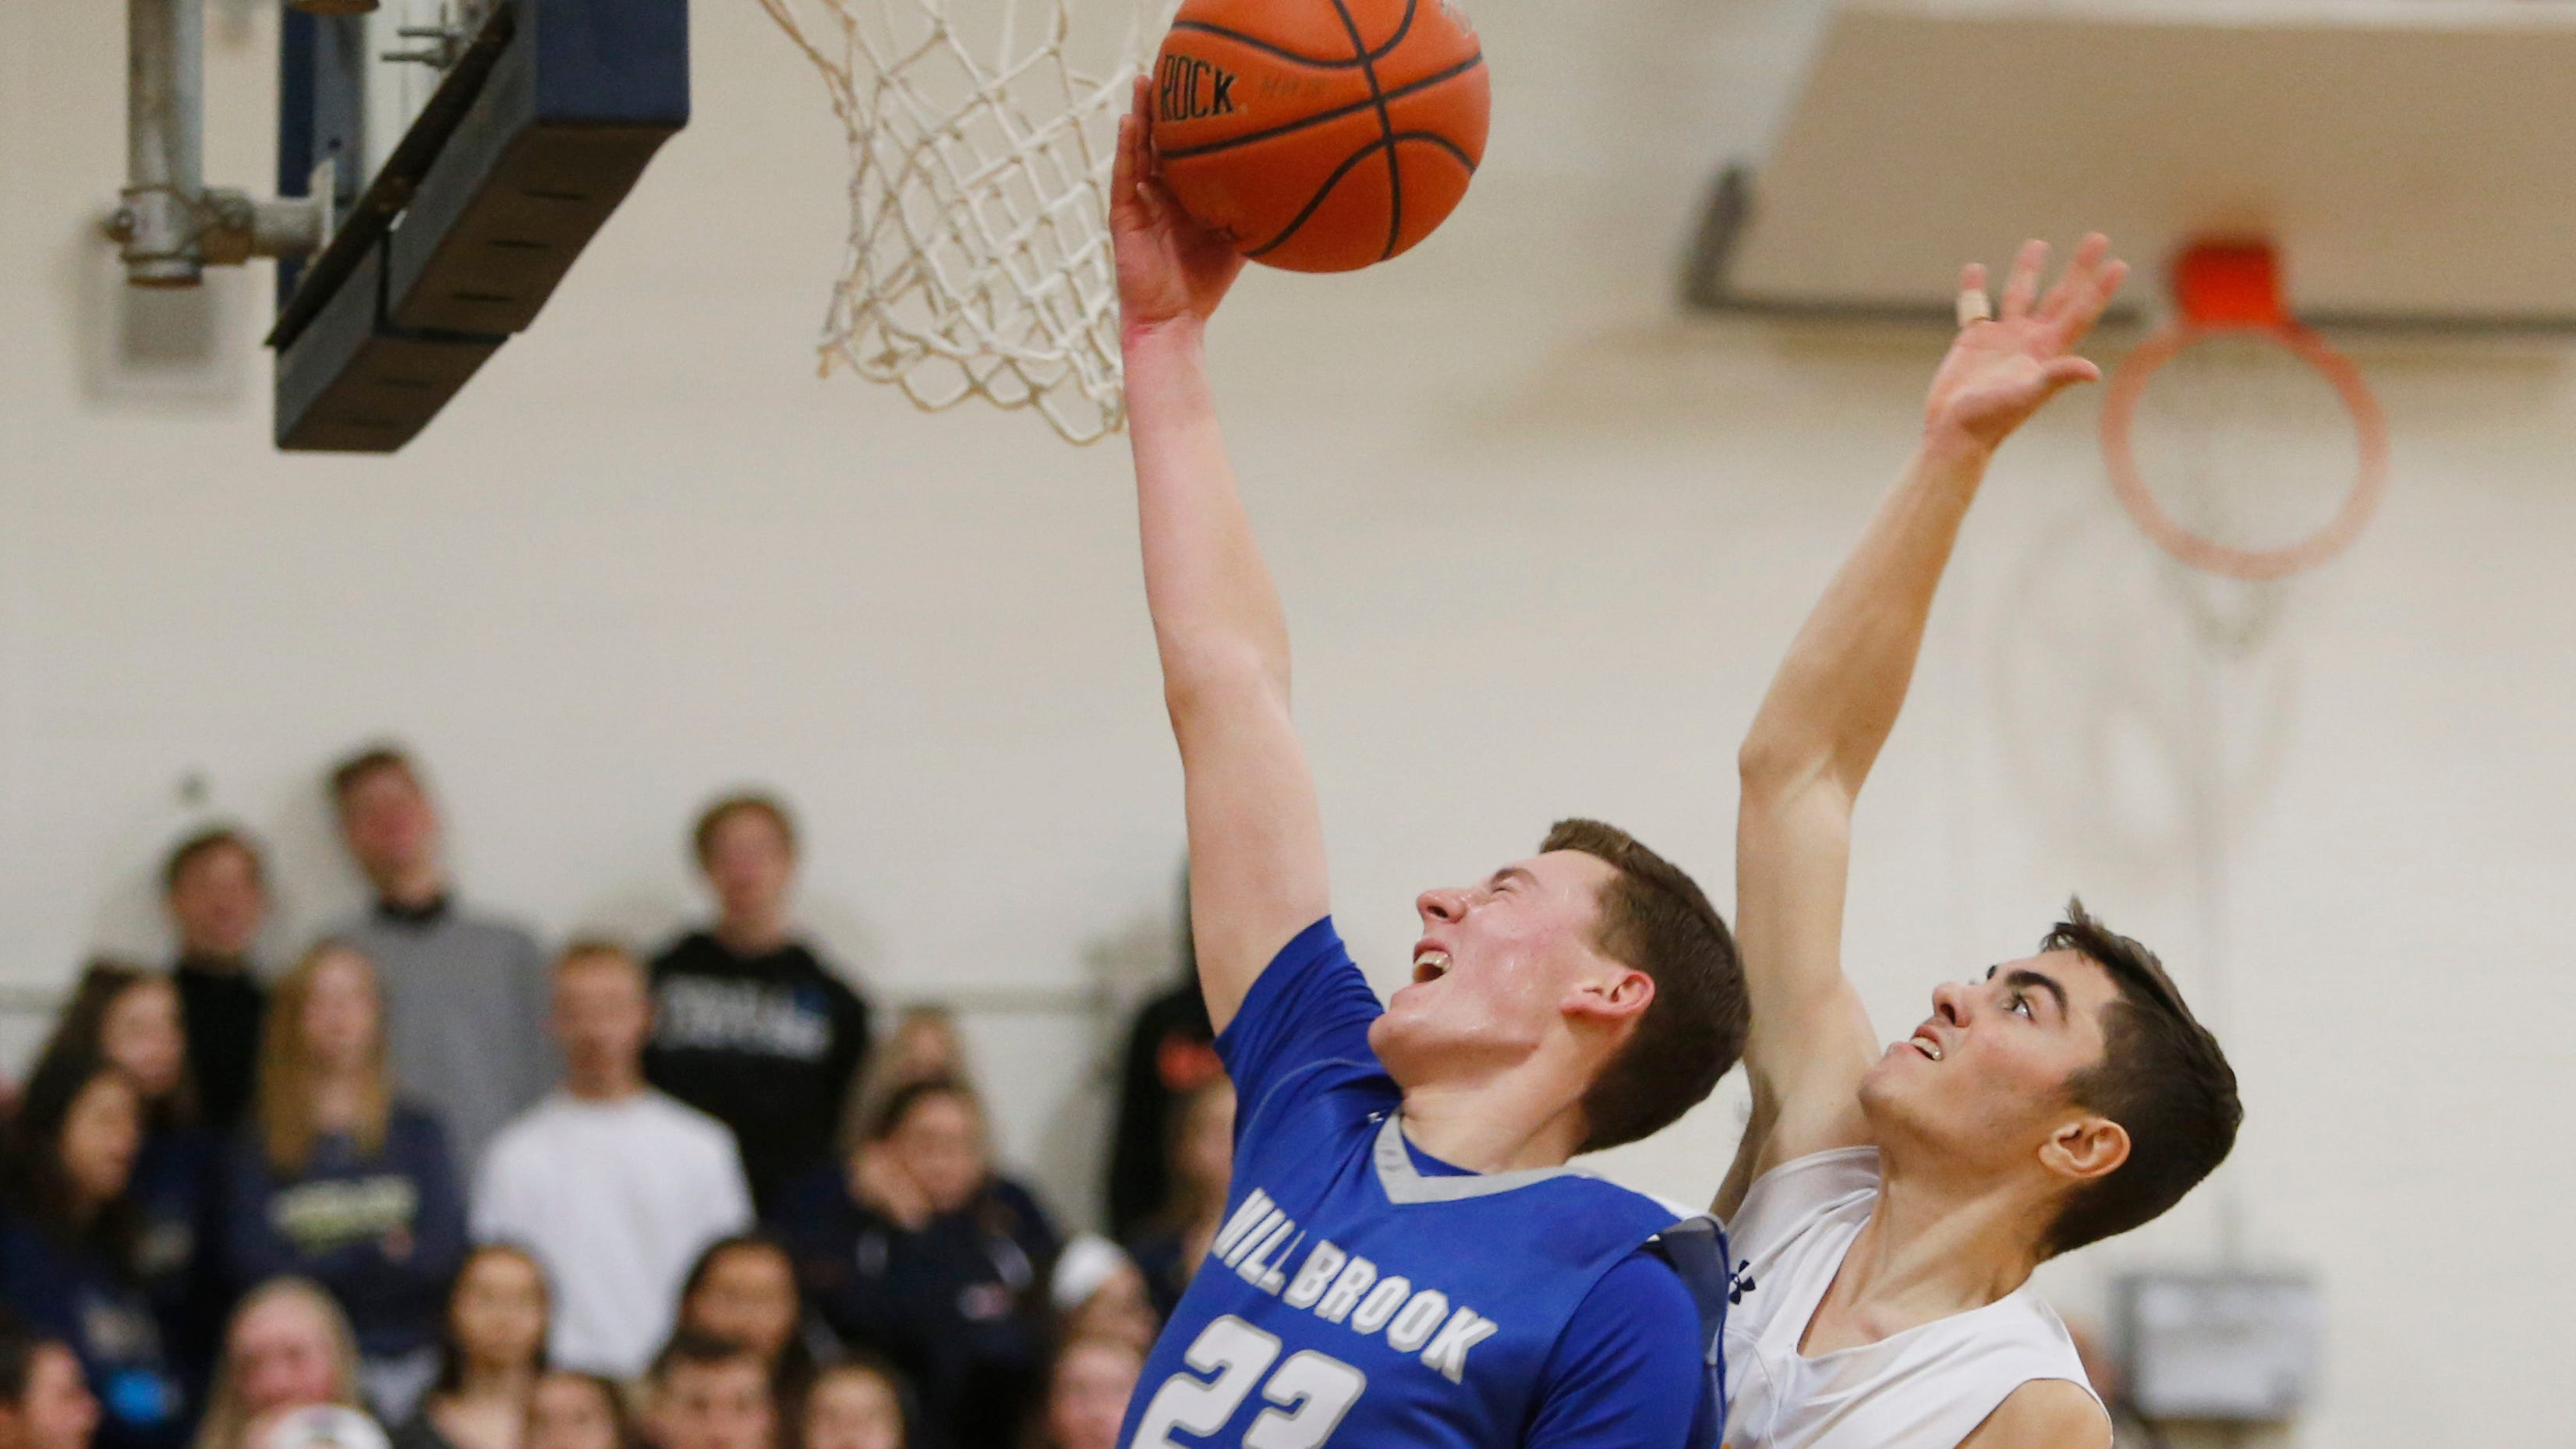 Millbrook's Patrick Kyle goes for a layup as he is covered by Highland's John Scalo during Tuesday's game in Highland on December 11, 2018.